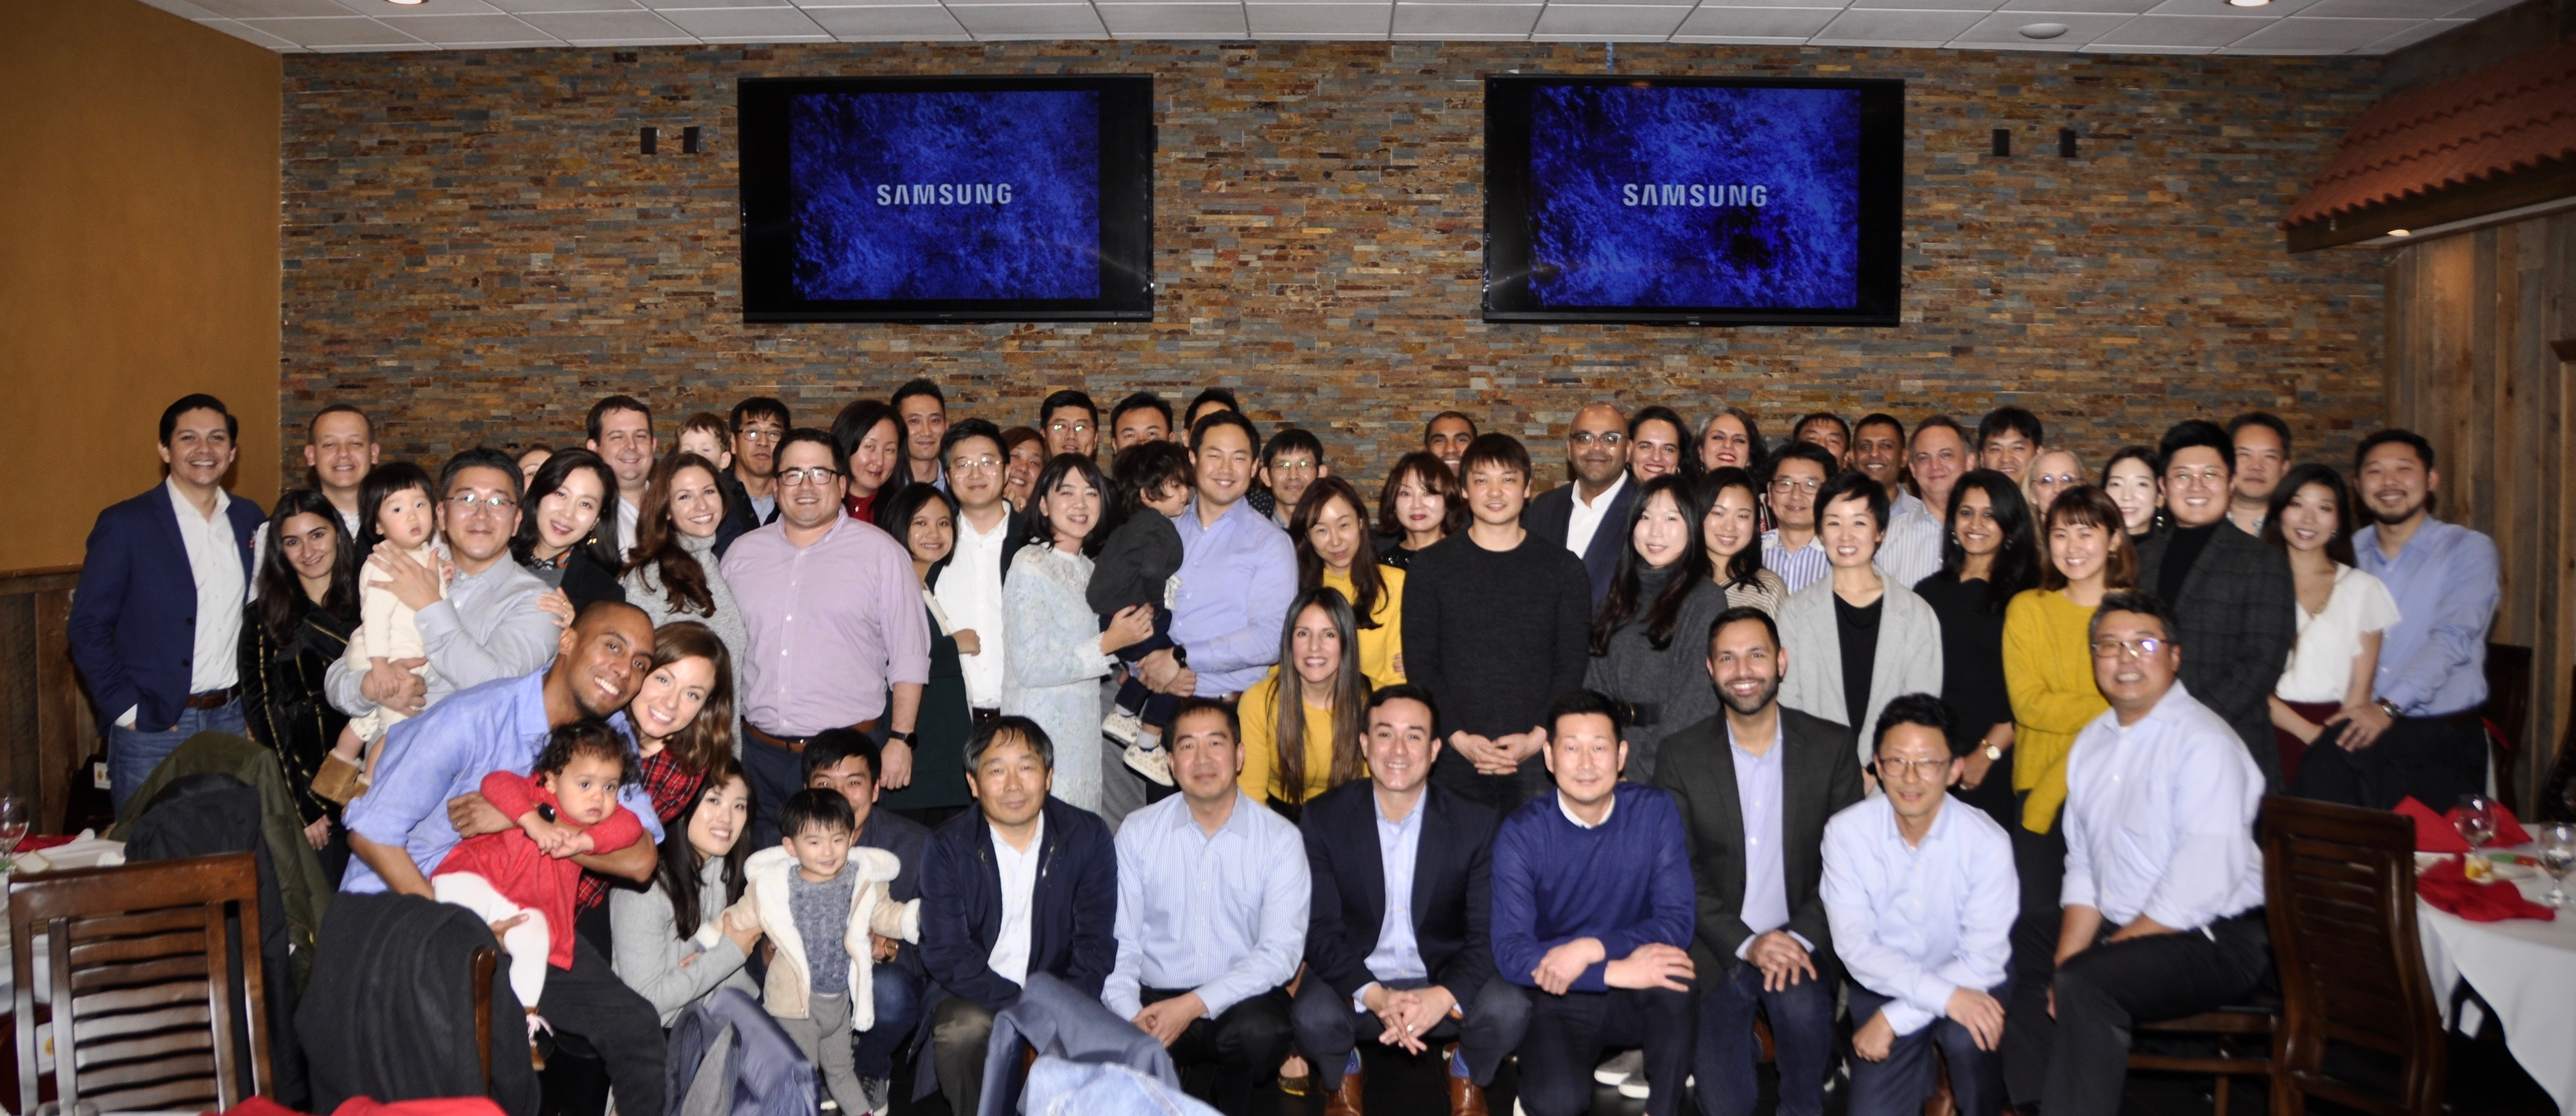 Team picture from our holiday party in December, it includes all the teams in NJ (PI, PROC) under Renzo along with family members.